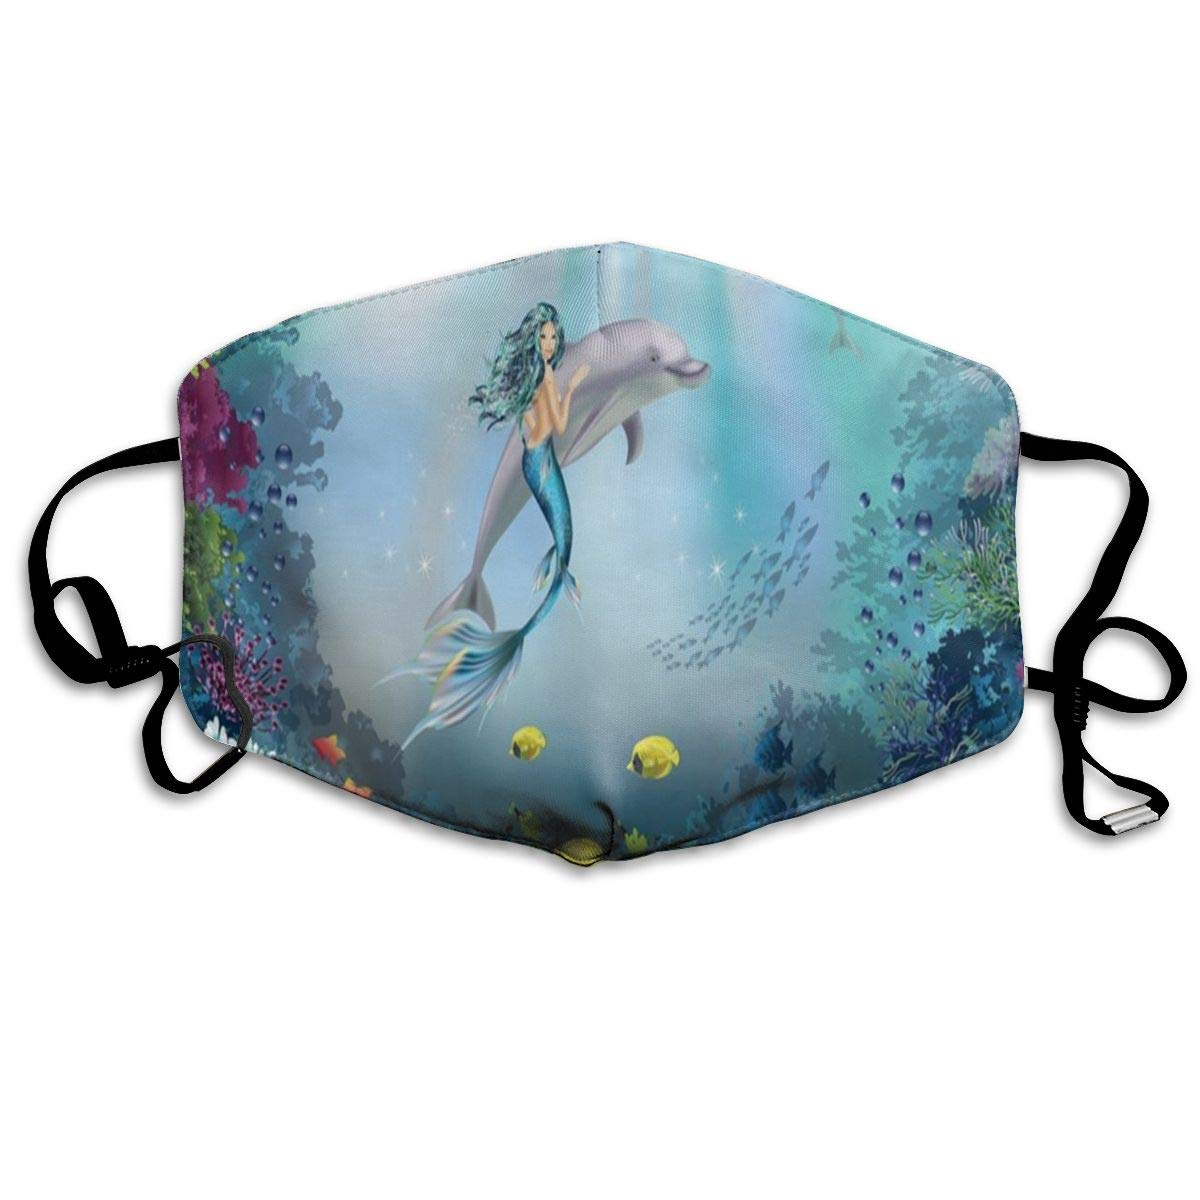 Mermaid And Dolphins Personalized Dust Mouth Mask Reusable Anti-Dust Face Mask Adjustable Earloop Skin Protection